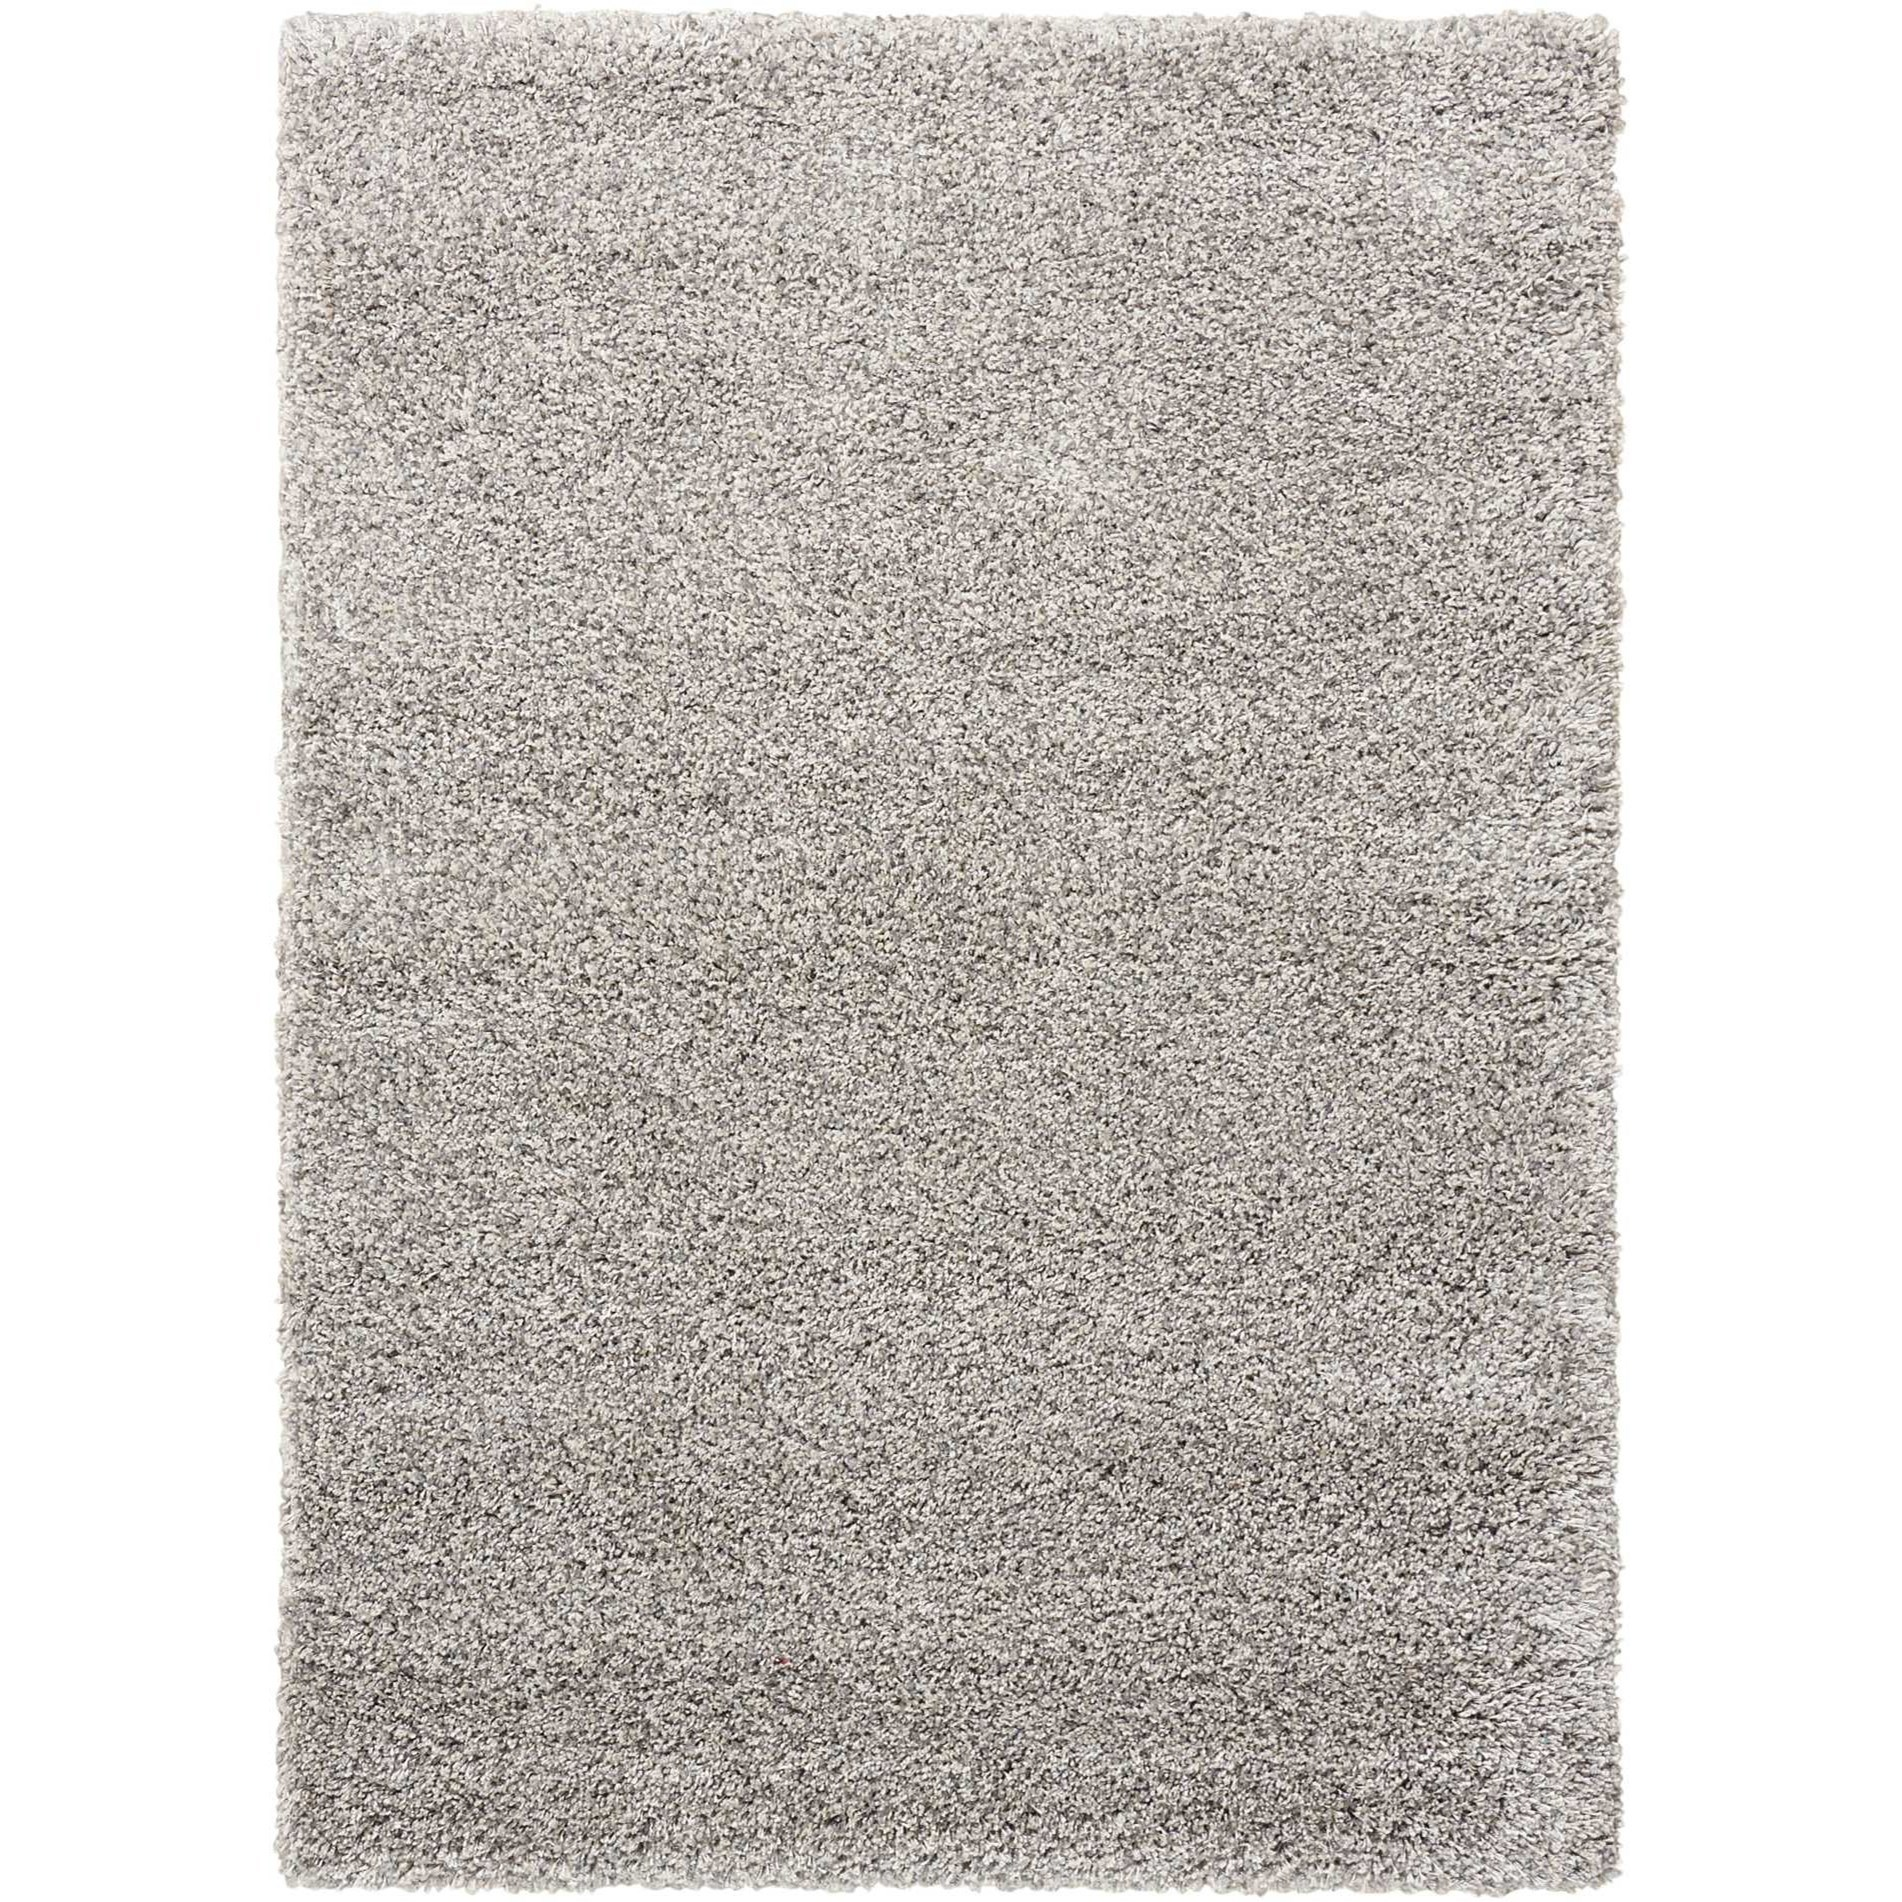 Amore Amore AMOR1 Grey 8'x11'   Rug by Nourison at Home Collections Furniture